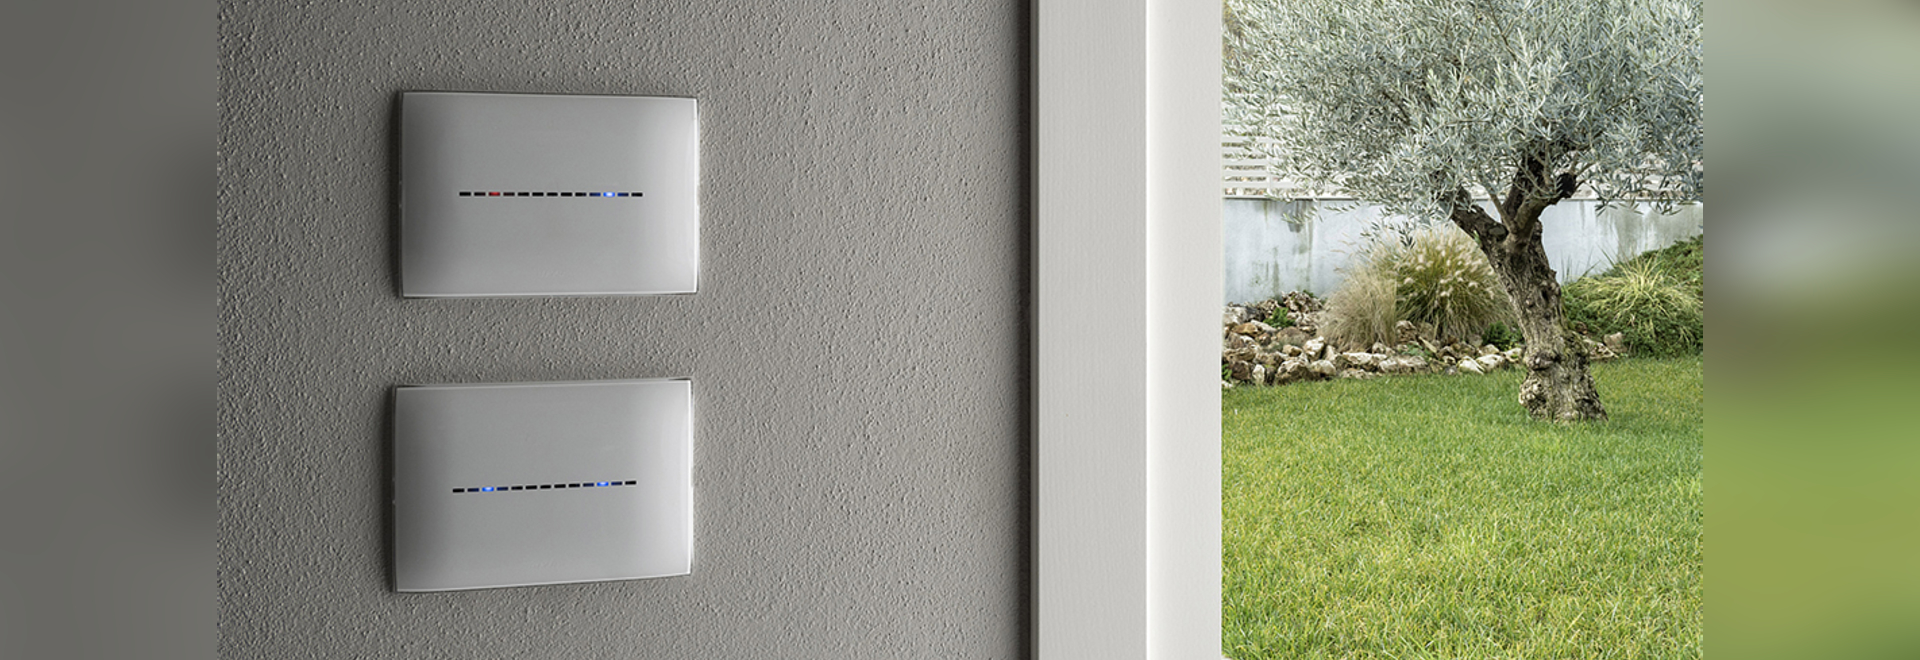 Touch switches: the style signature of a contemporary home